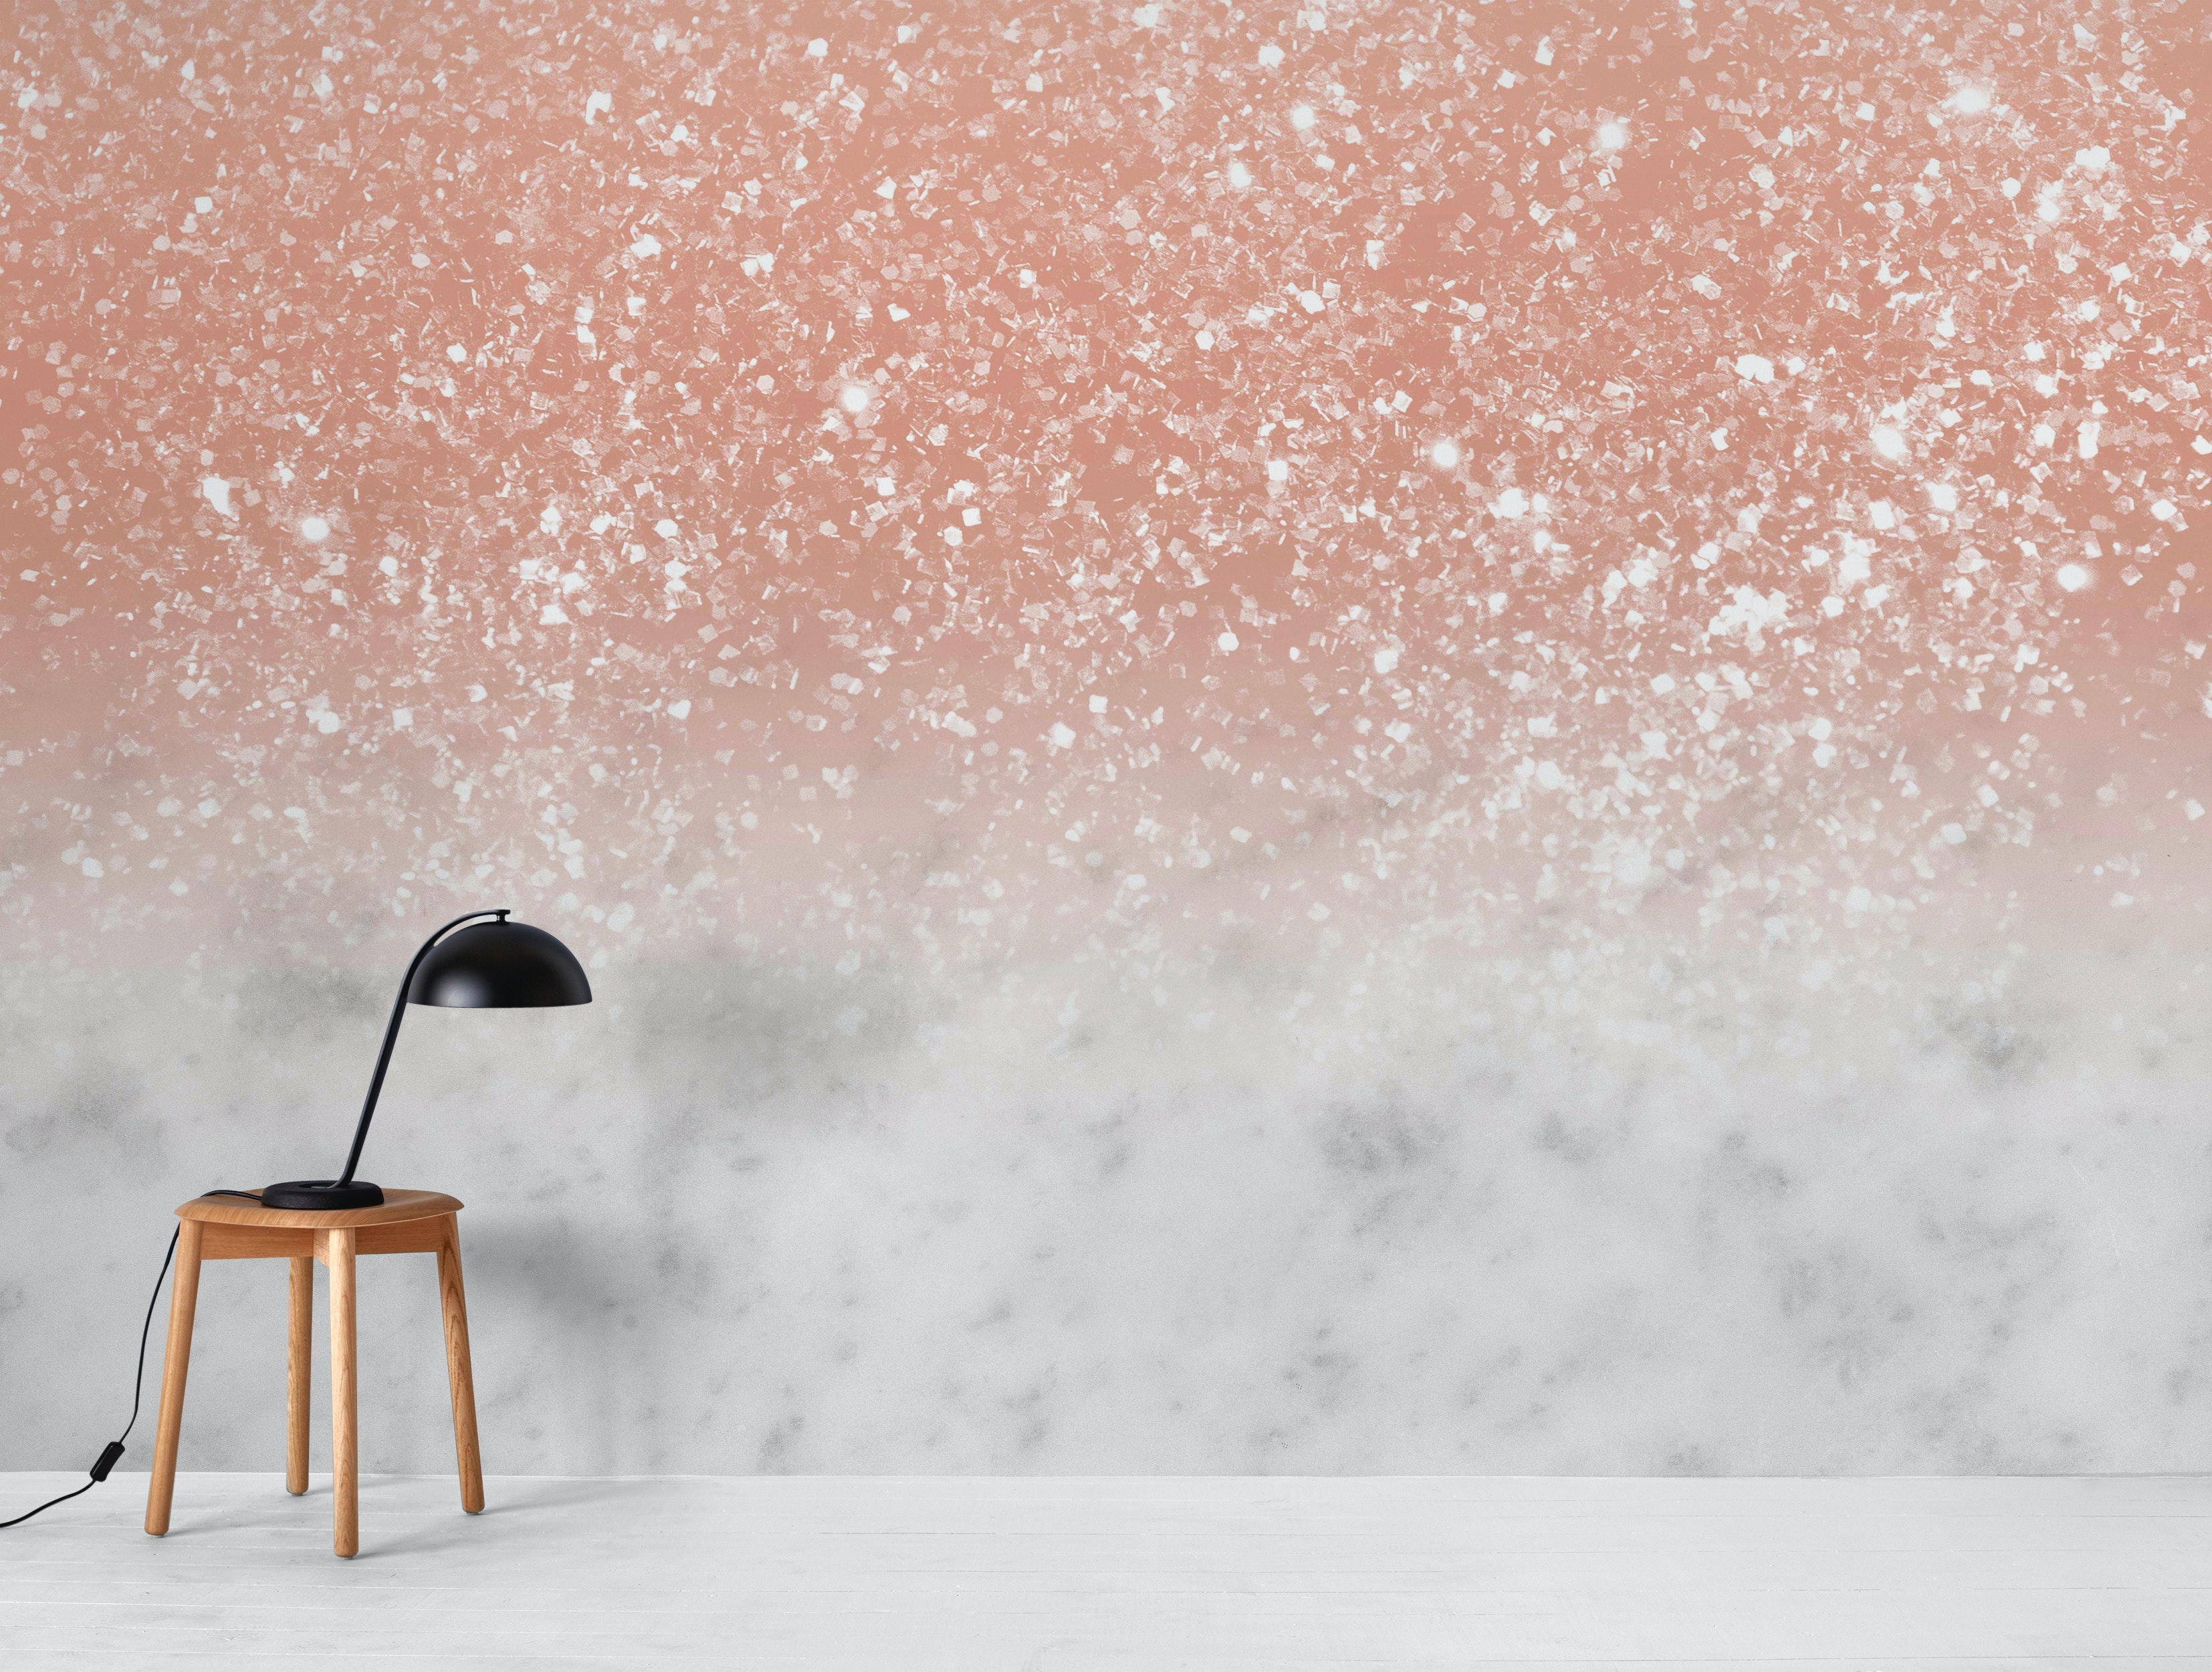 Buy Marble Rose Gold Ombre 1 Wallpaper Free Us Shipping At Happywall Com